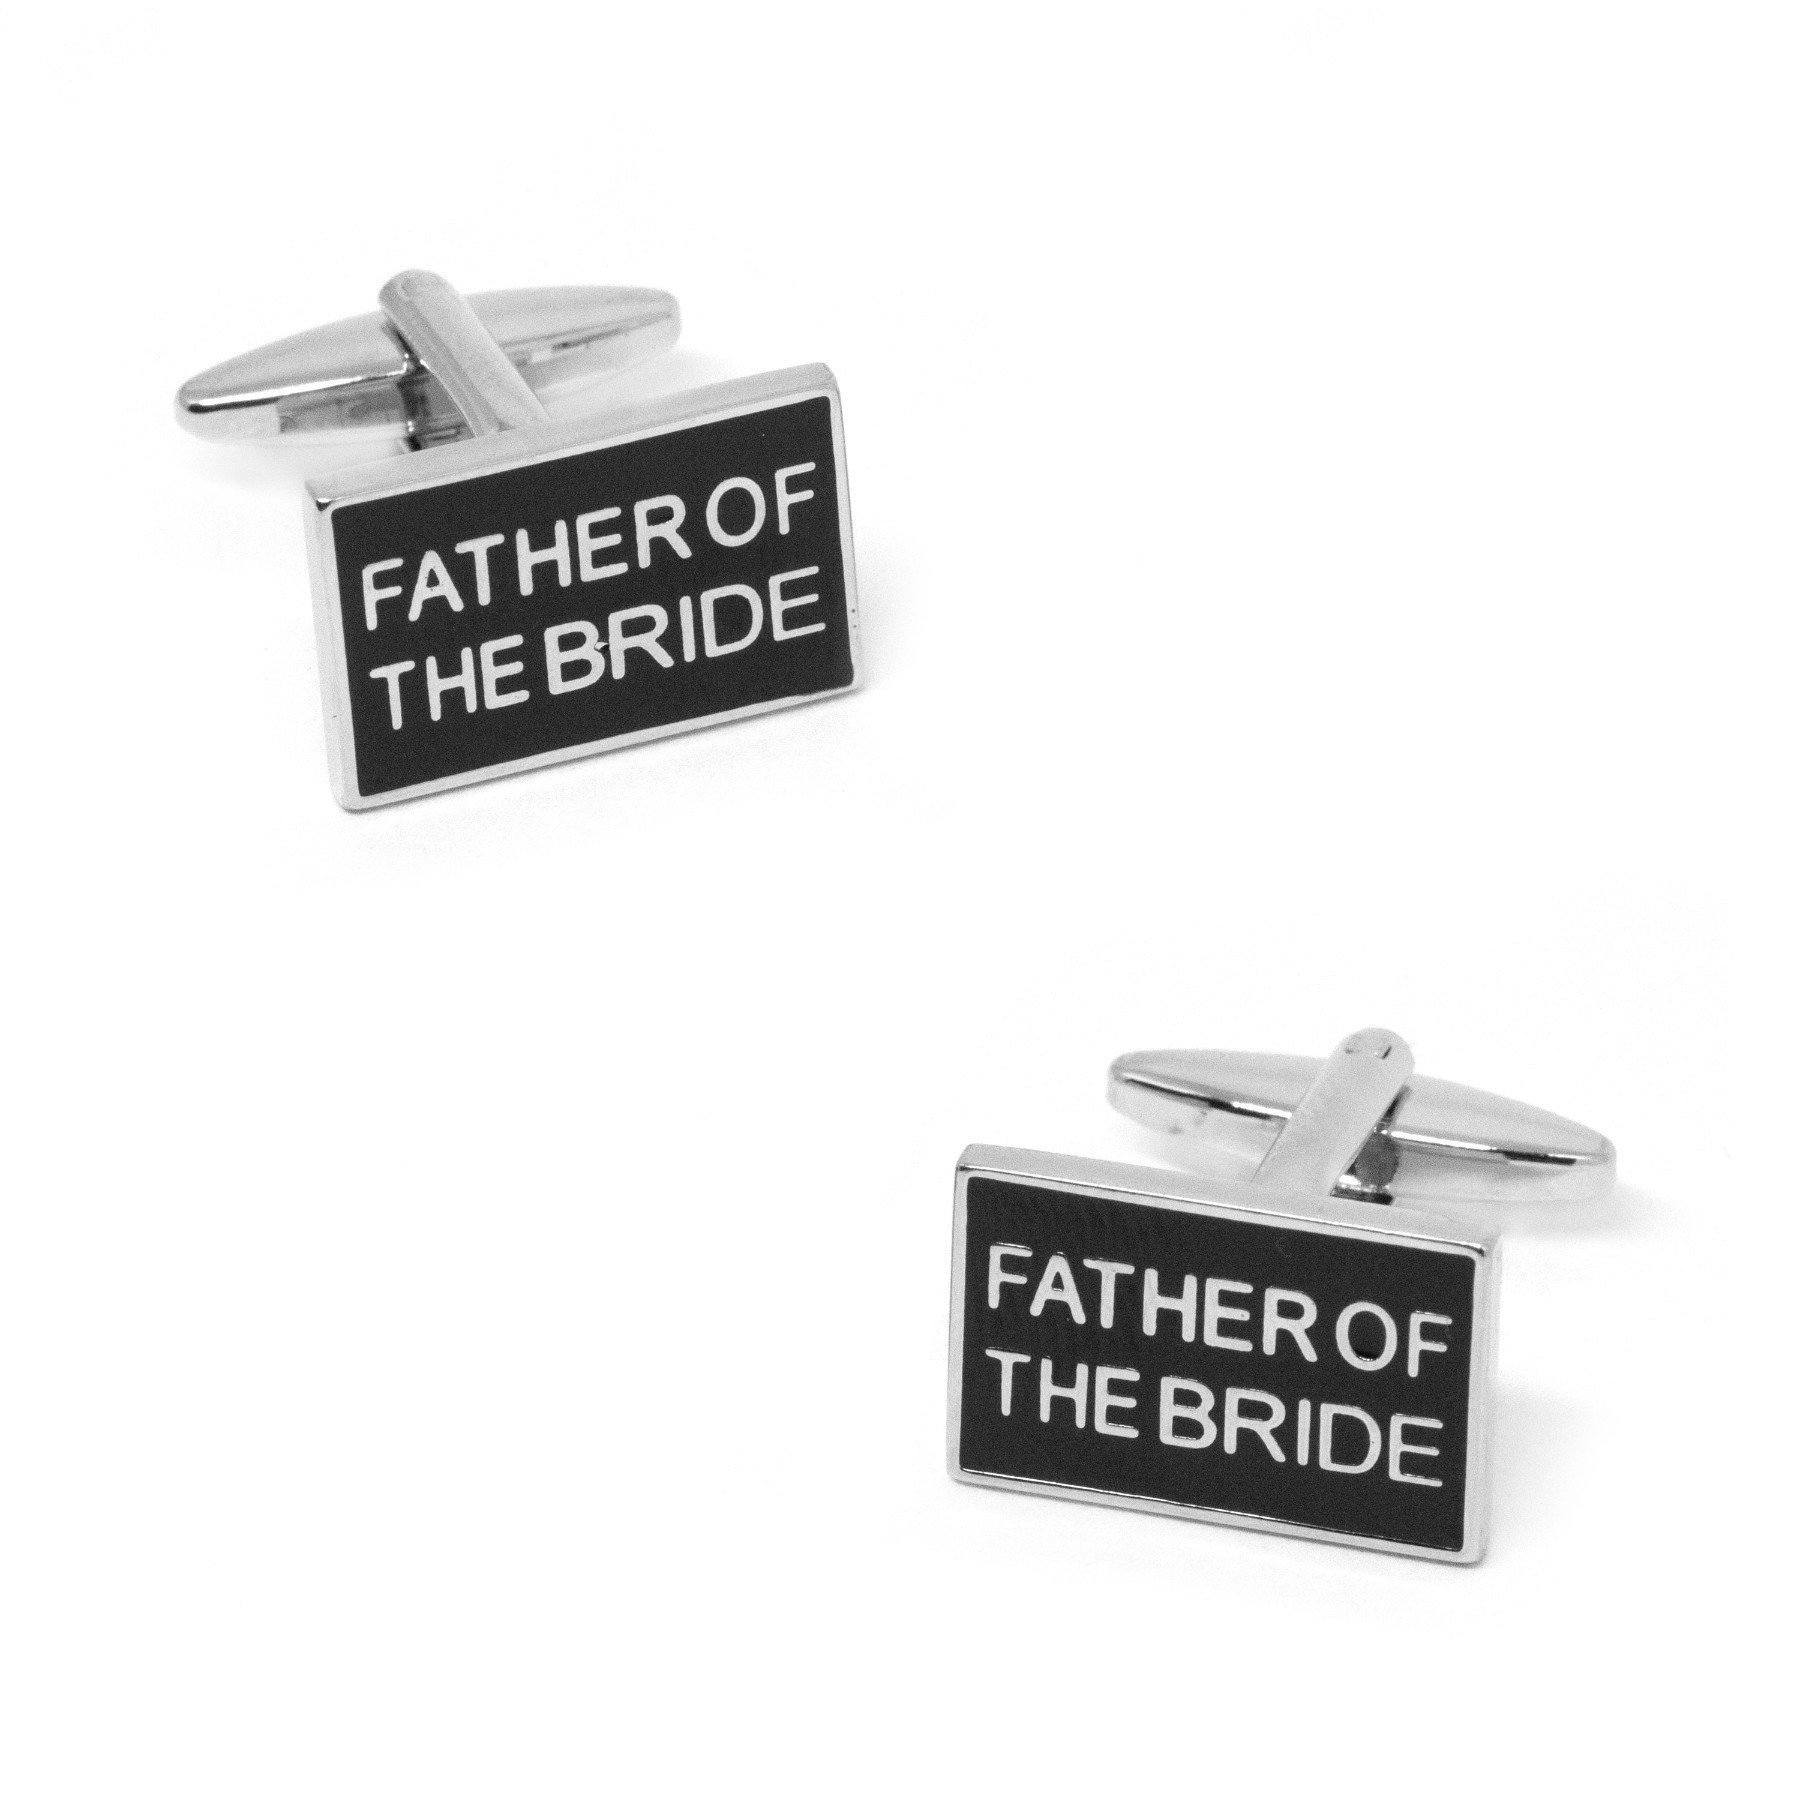 Father of the Bride Black and Silver Wedding Cufflinks, Wedding Cufflinks, Cuffed.com.au, CL9506, $29.00